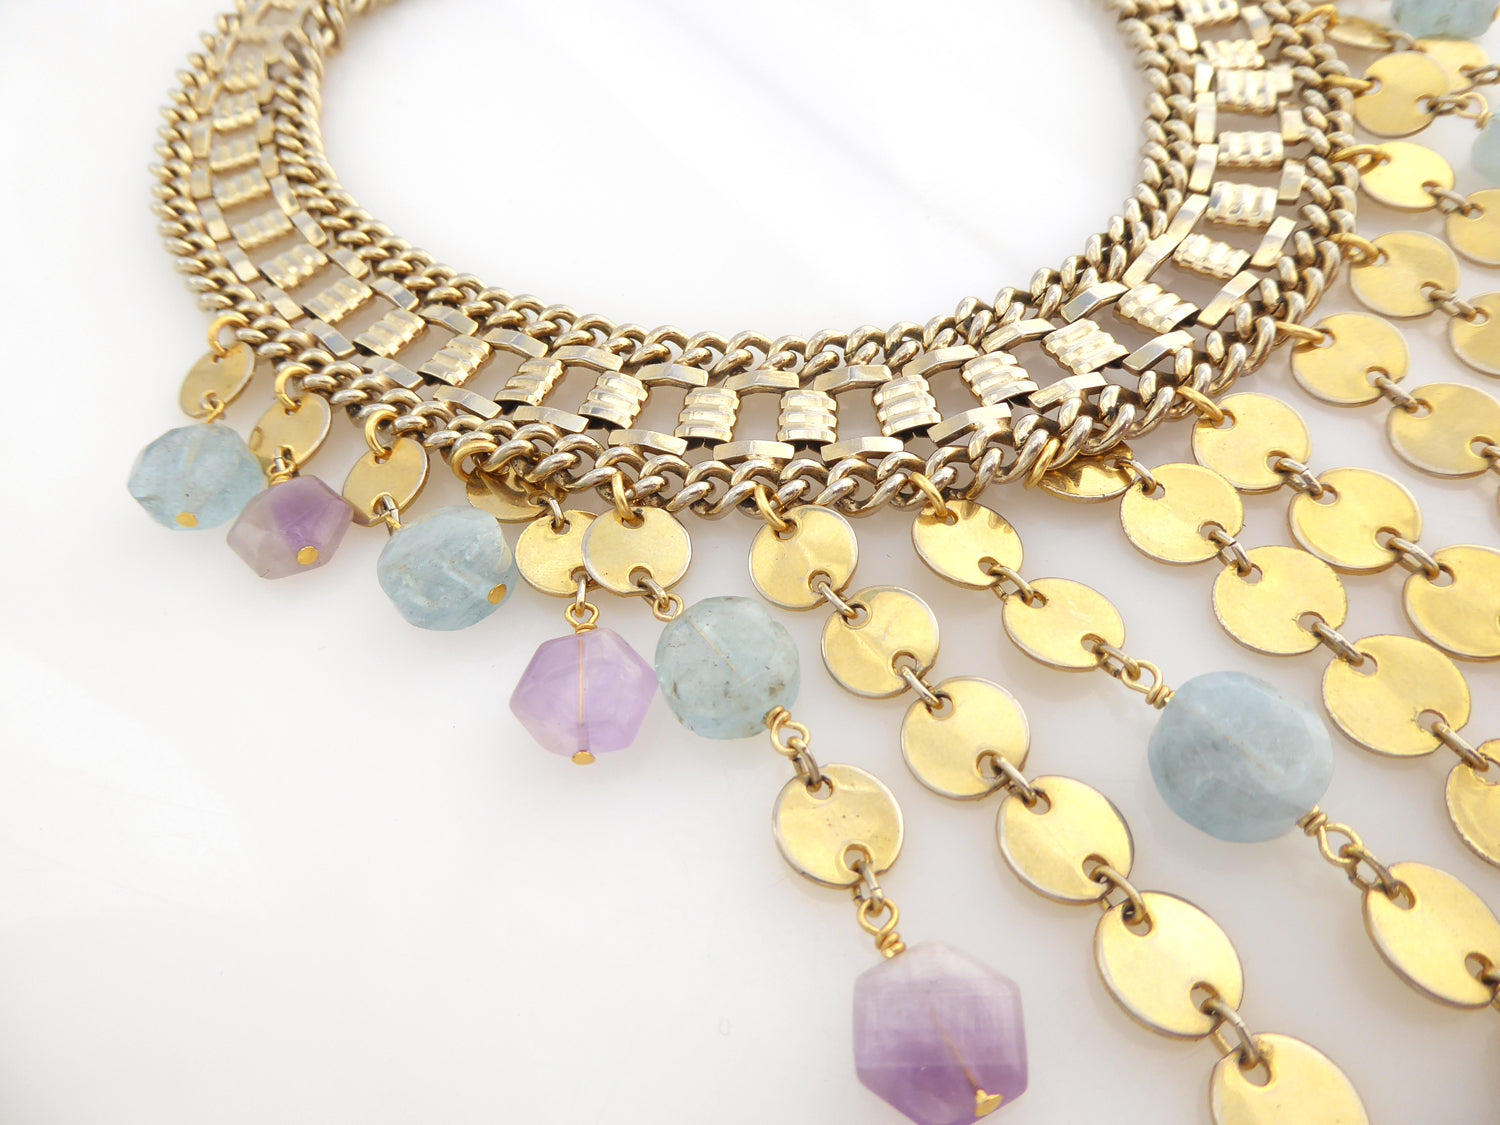 Carmeline aquamarine and amethyst necklace by Jenny Dayco 6